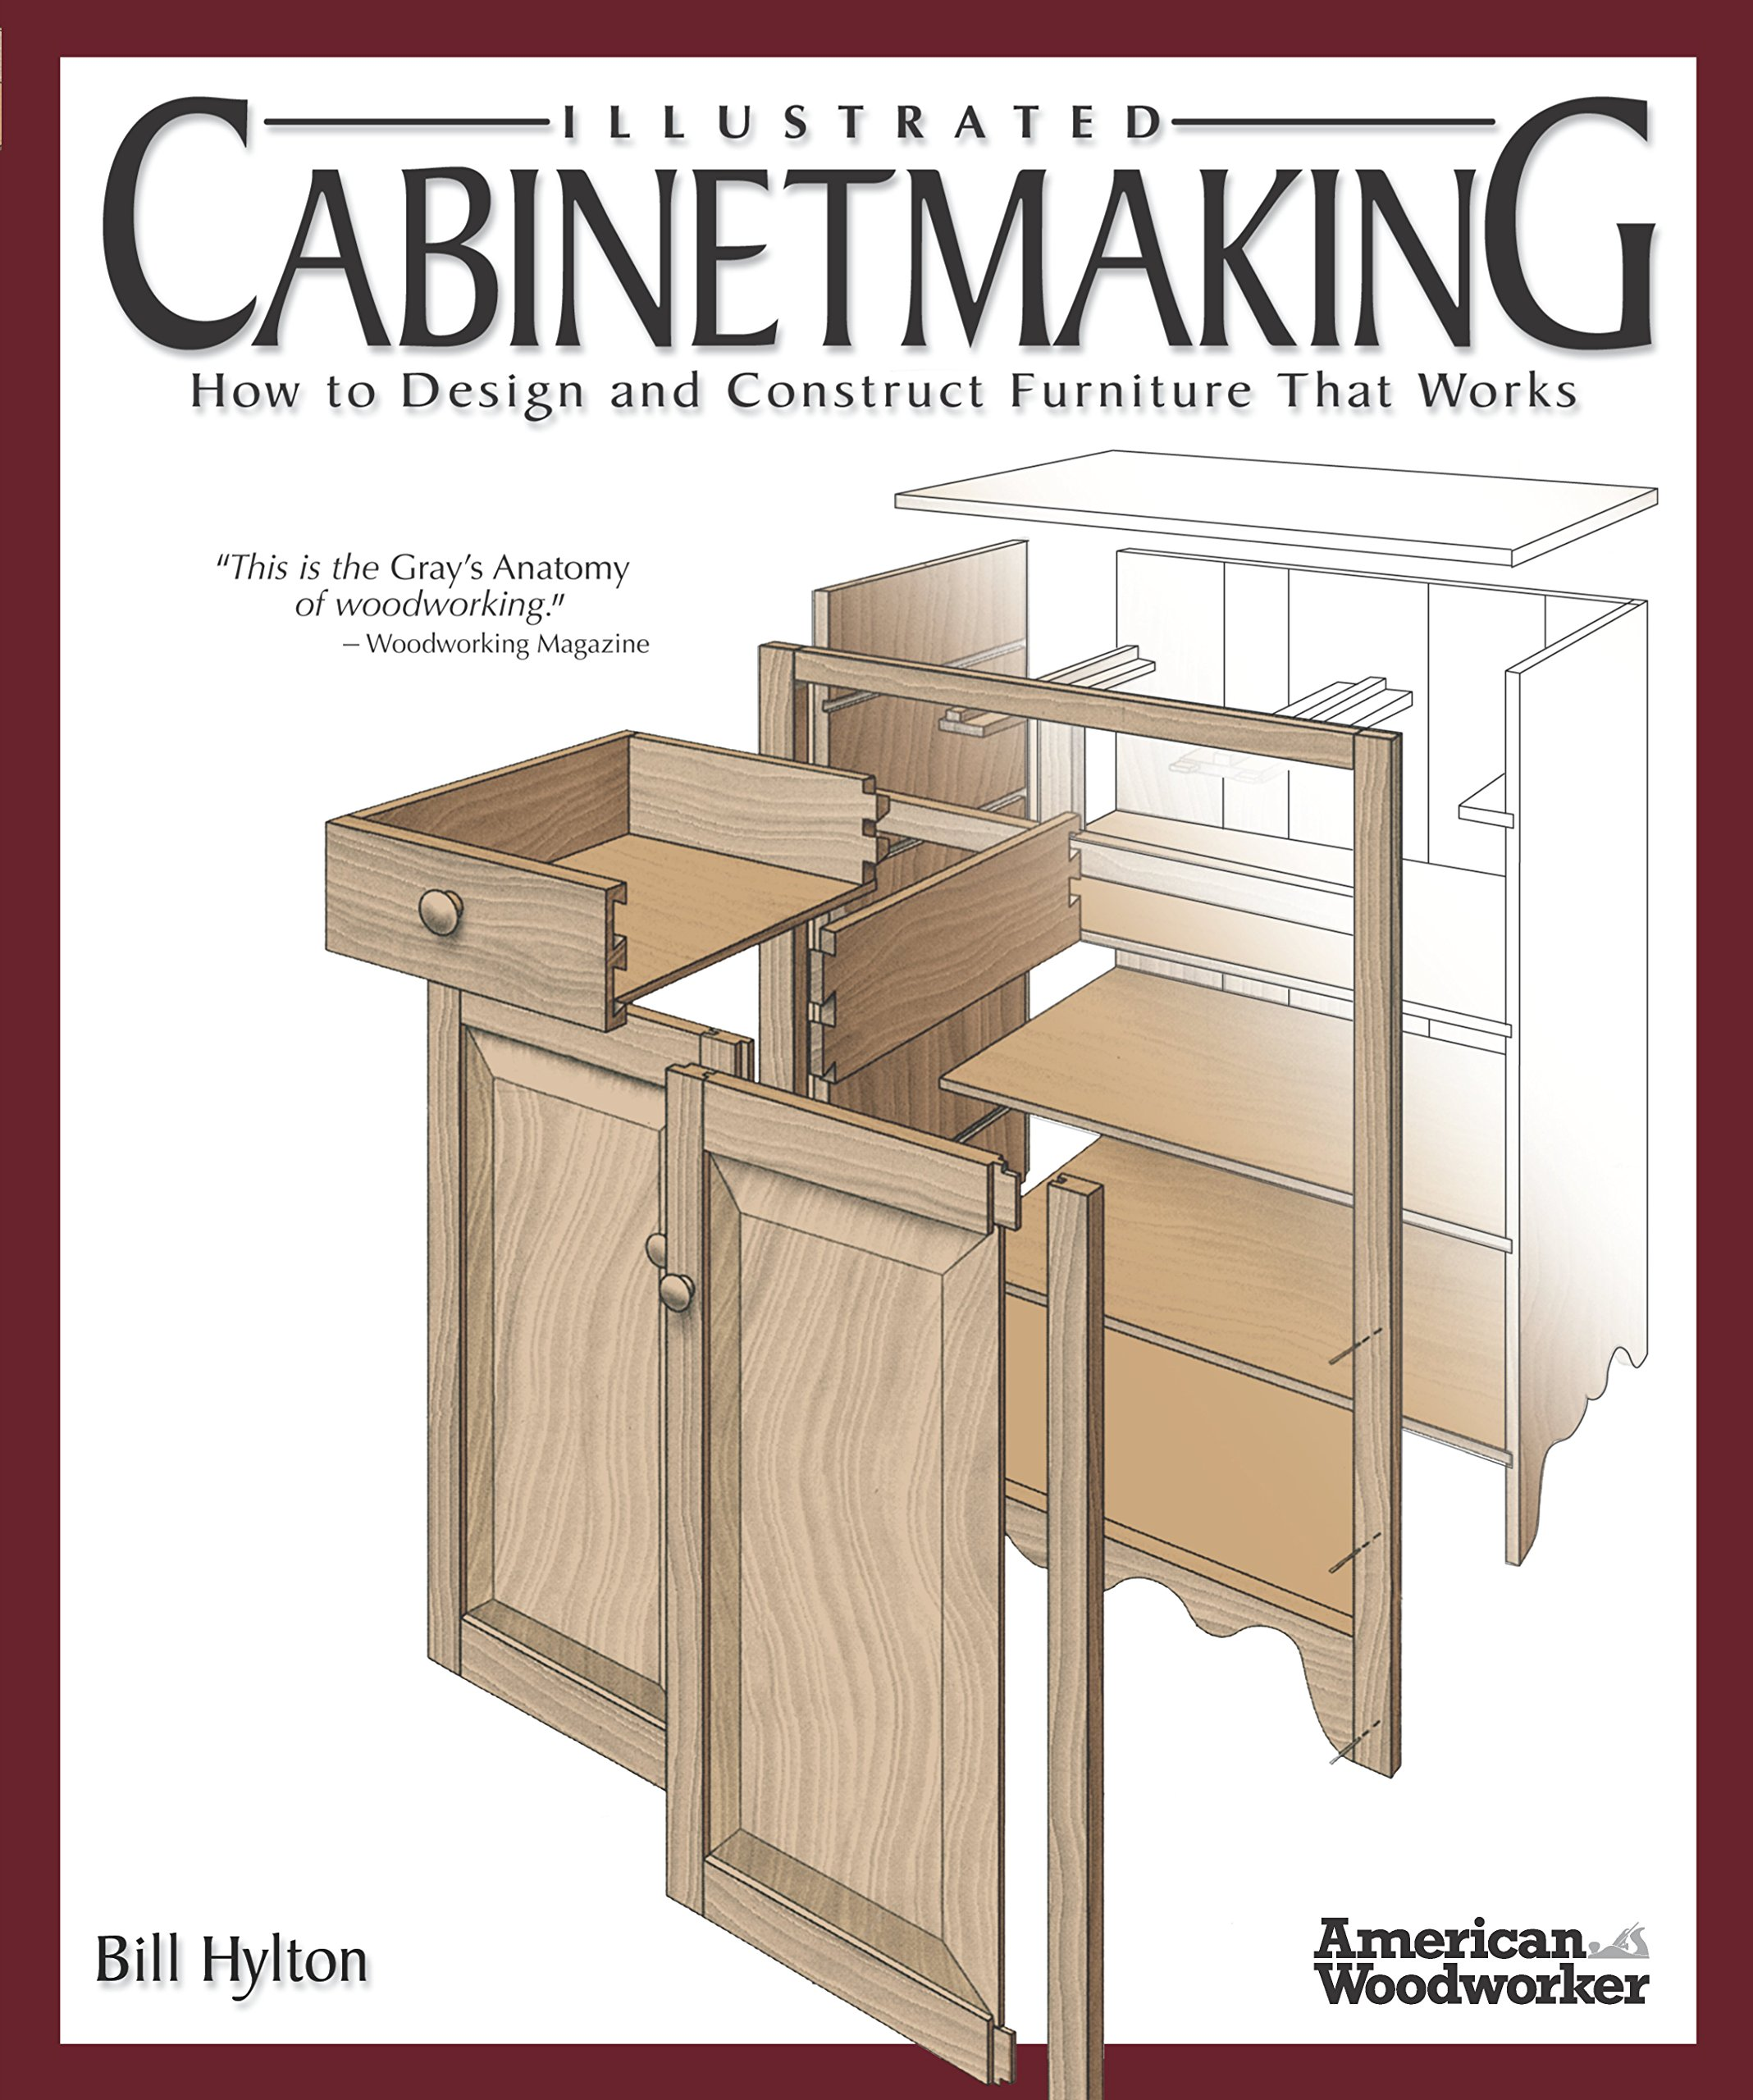 Download Illustrated Cabinetmaking: How to Design and Construct Furniture That Works (Fox Chapel Publishing) Over 1300 Drawings & Diagrams for Drawers, Tables, Beds, Bookcases, Cabinets, Joints & Subassemblies PDF